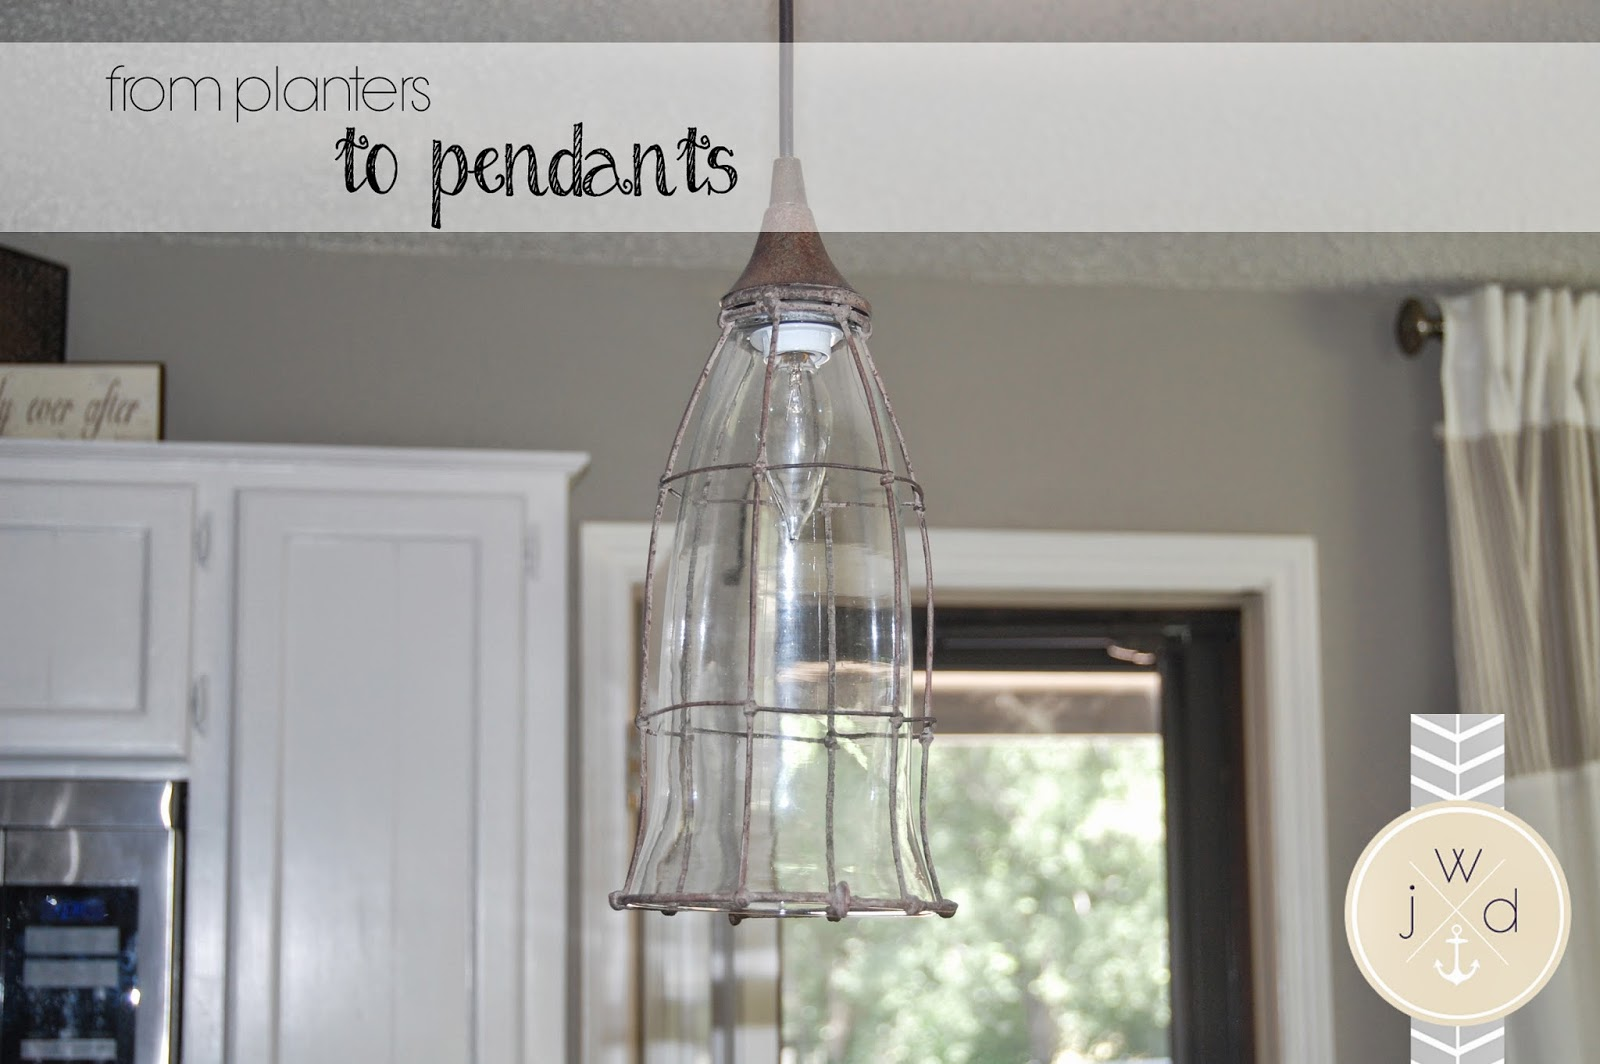 Style with Wisdom Planters to Pendants DIY Farmhouse Style Lighting